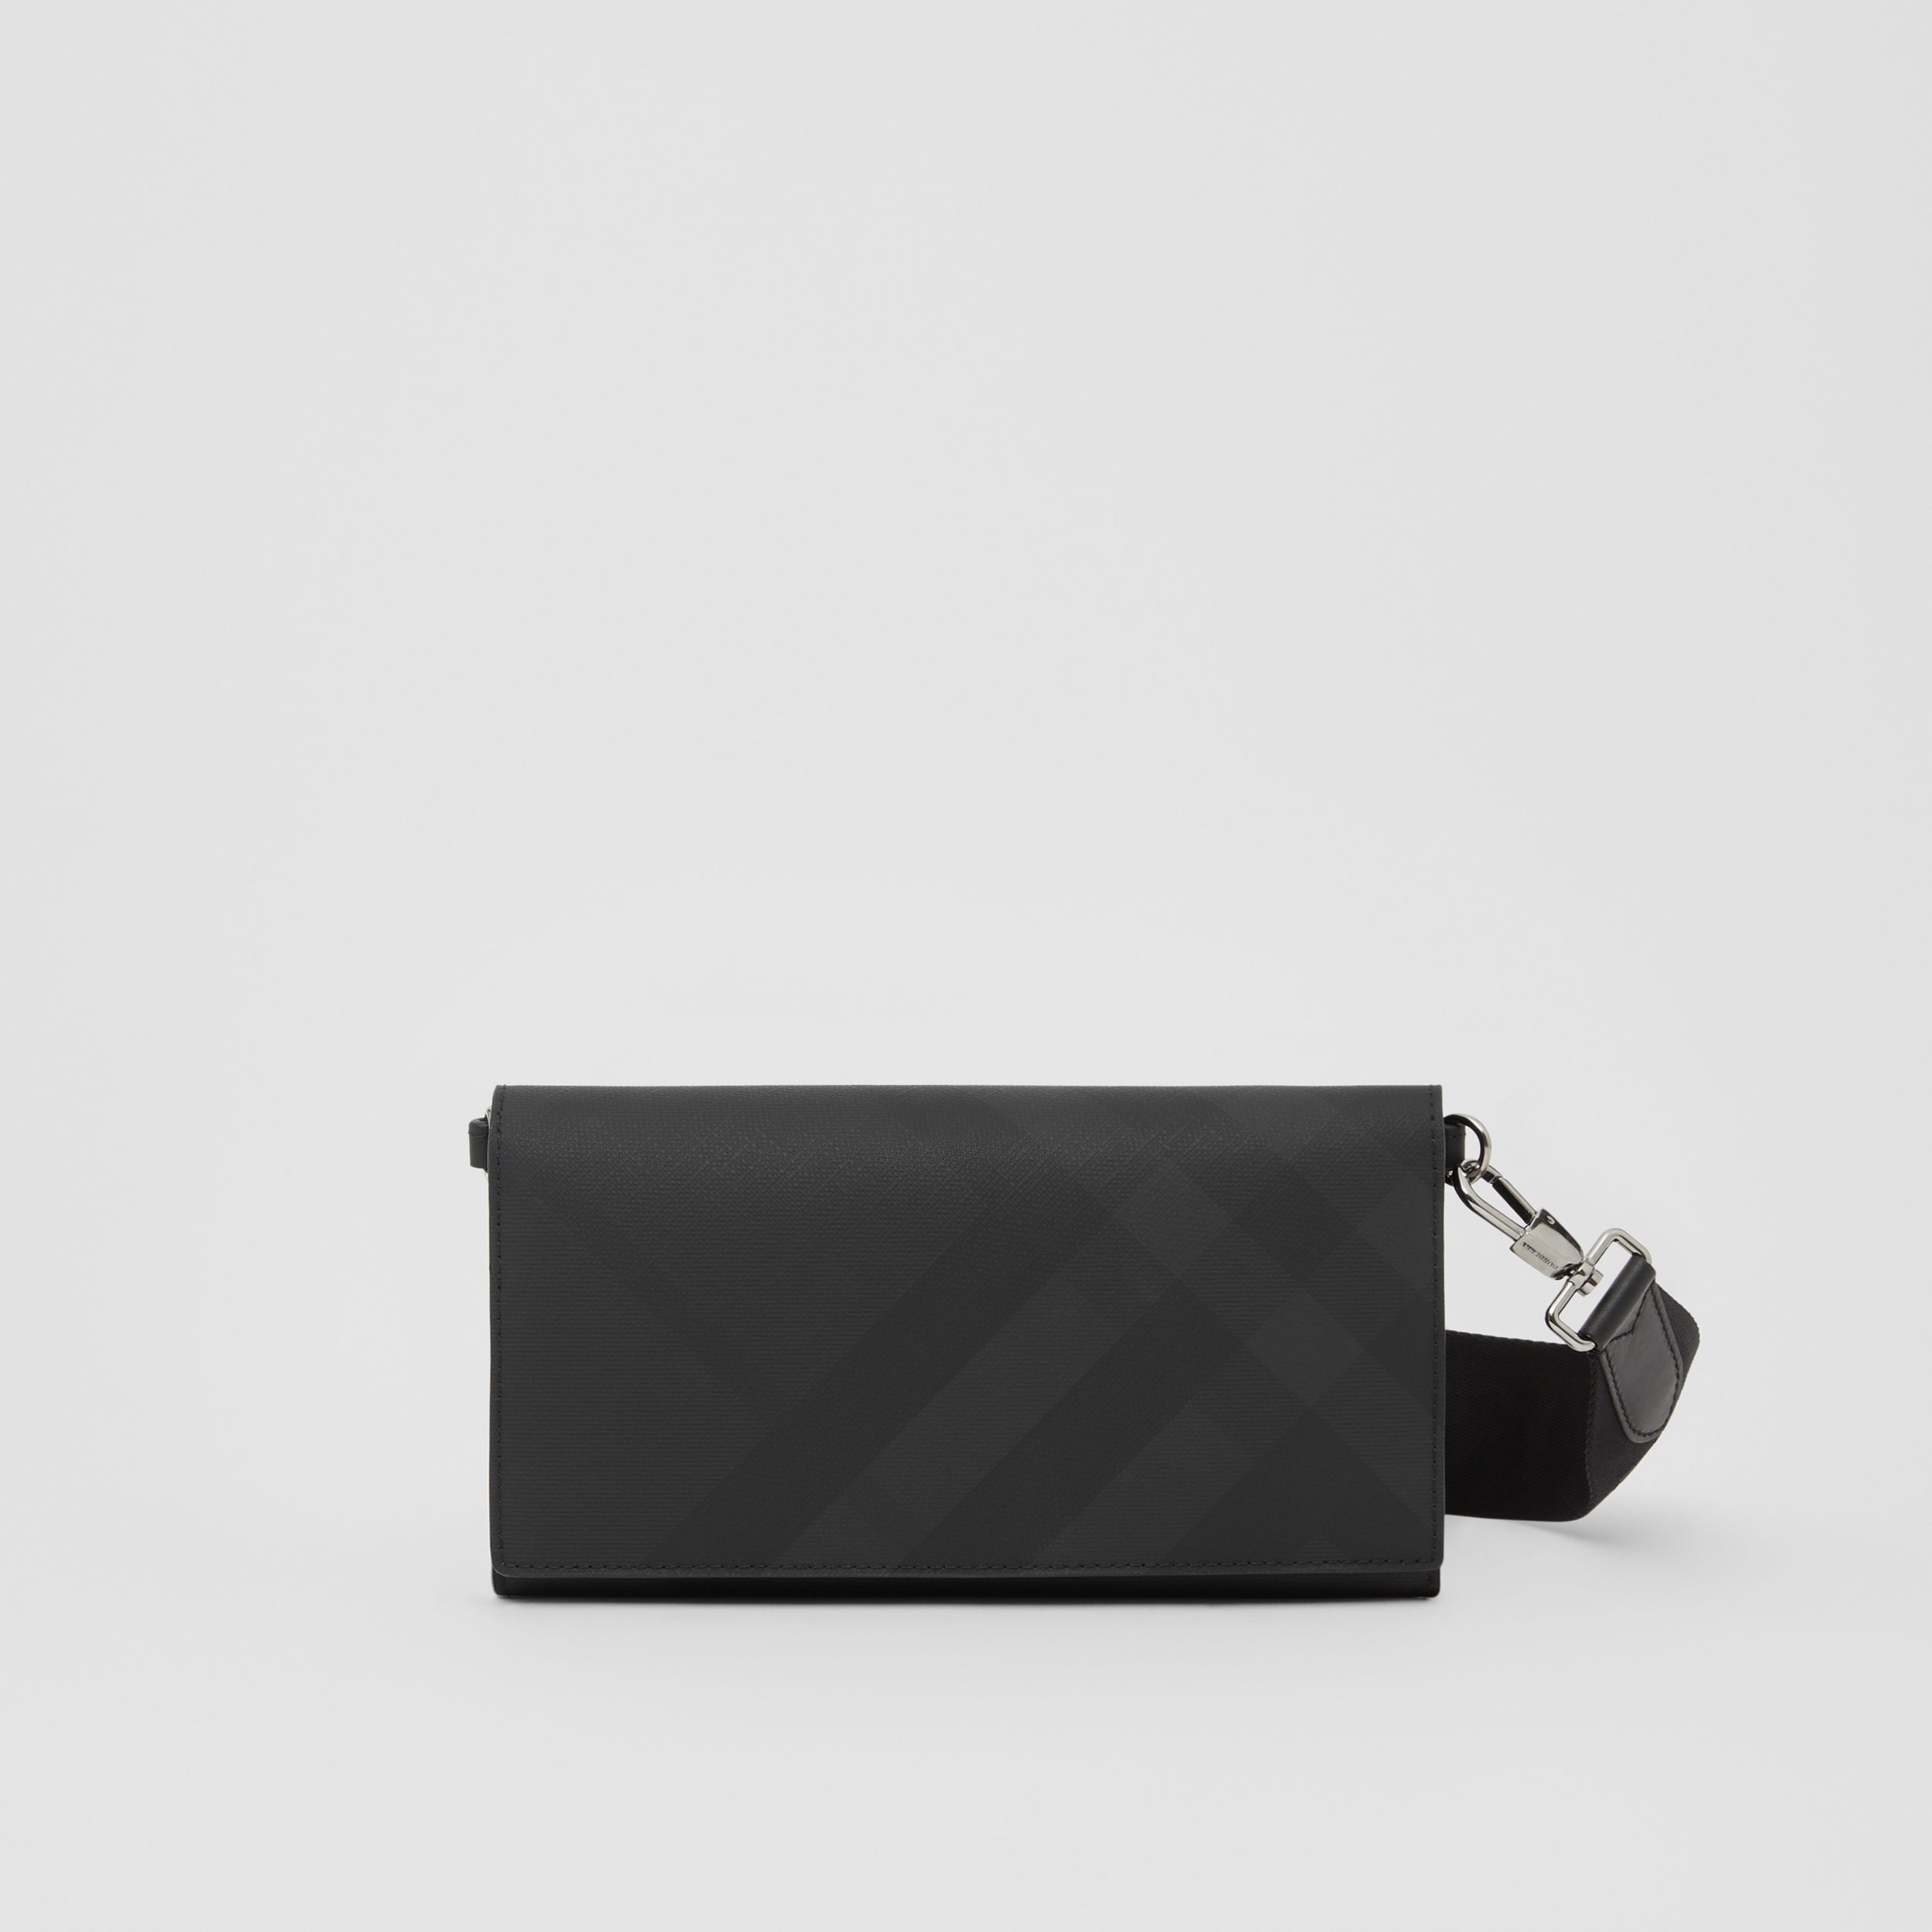 London Check Wallet with Detachable Strap in Dark Charcoal | Burberry - 1